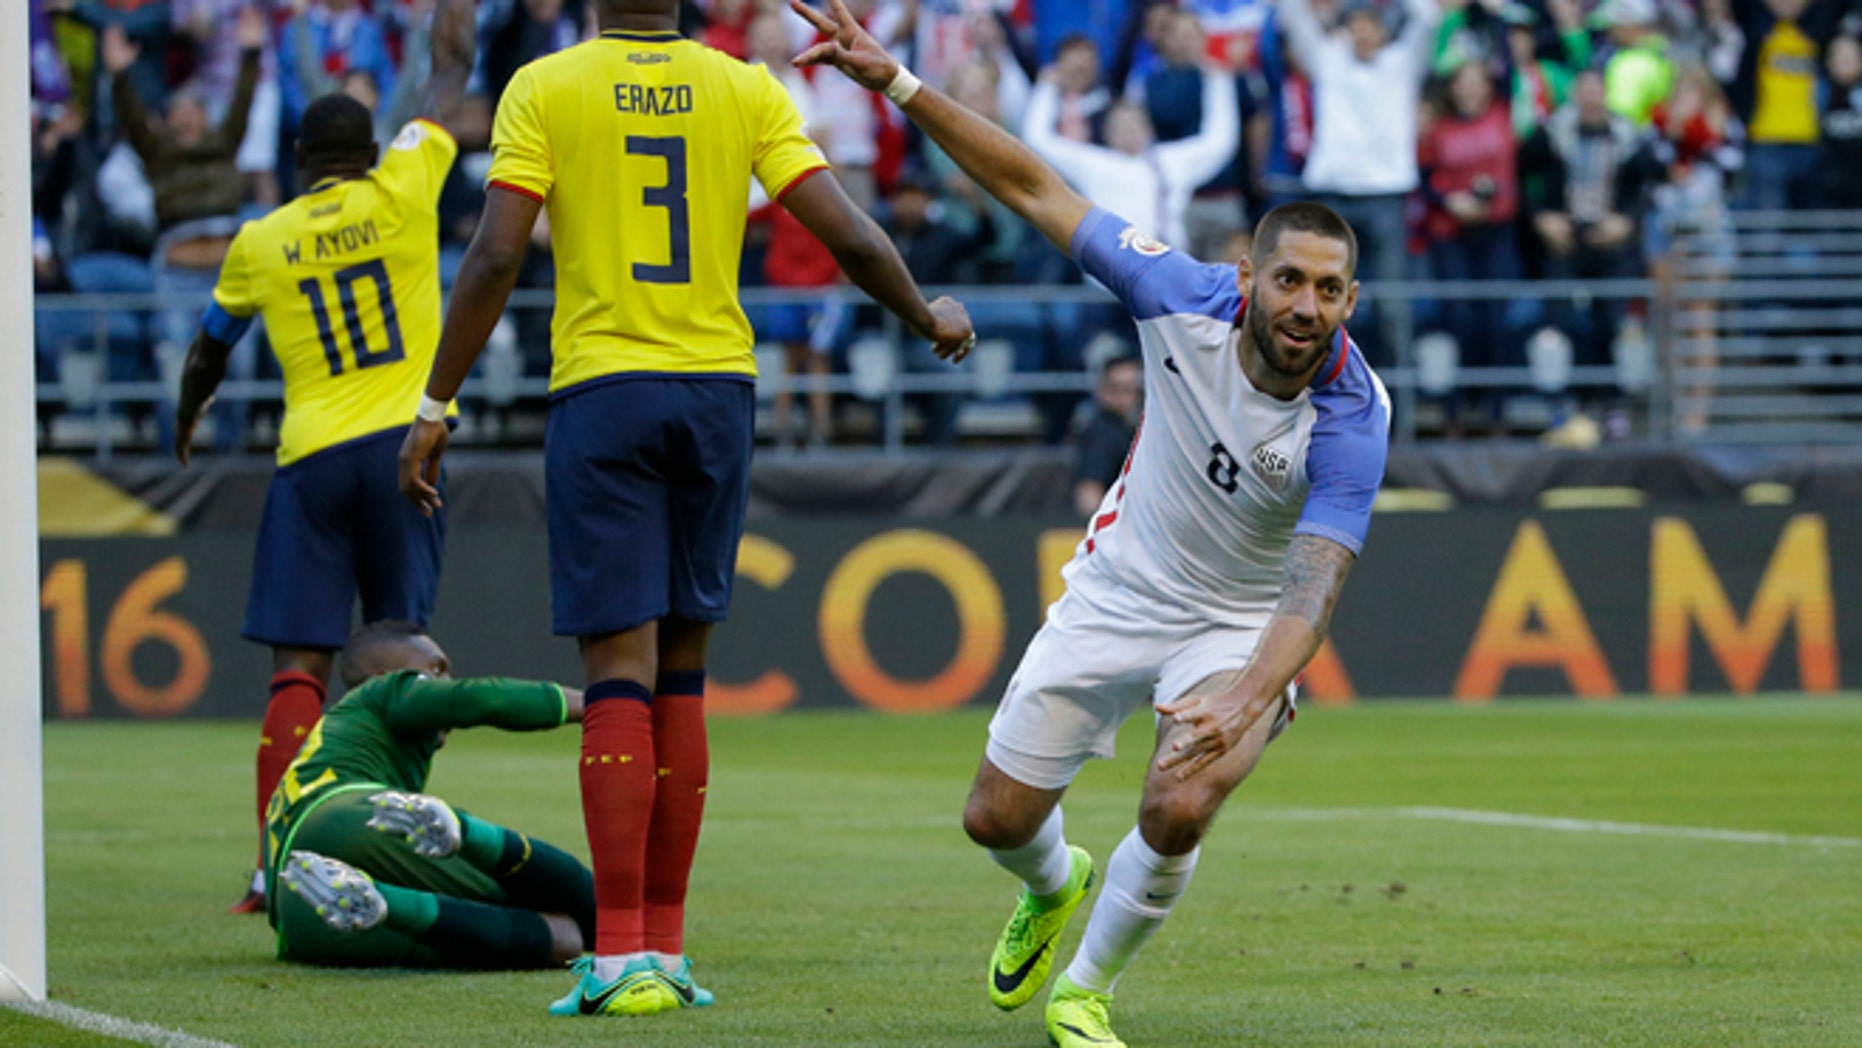 United States' Clint Dempsey , right, celebrates after his teammate Gyasi Zardes scoried against Ecuador during a Copa America Centenario quarterfinal soccer match, Thursday, June 16, 2016 at CenturyLink Field in Seattle. (AP Photo/Ted S. Warren)